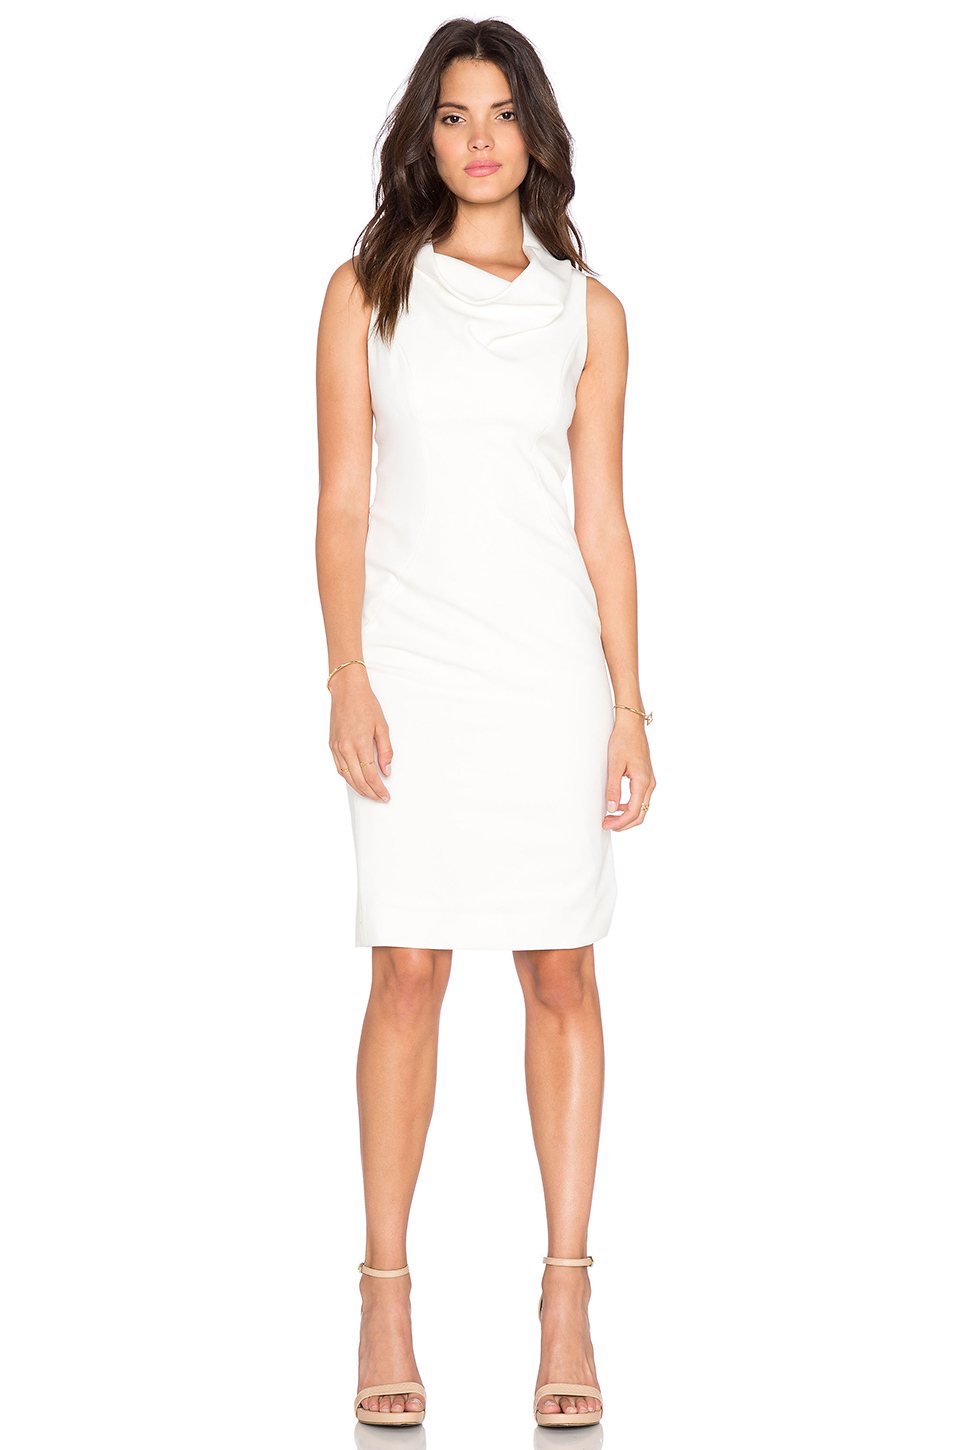 Milly Cowlneck Midi Dress in White | Lyst